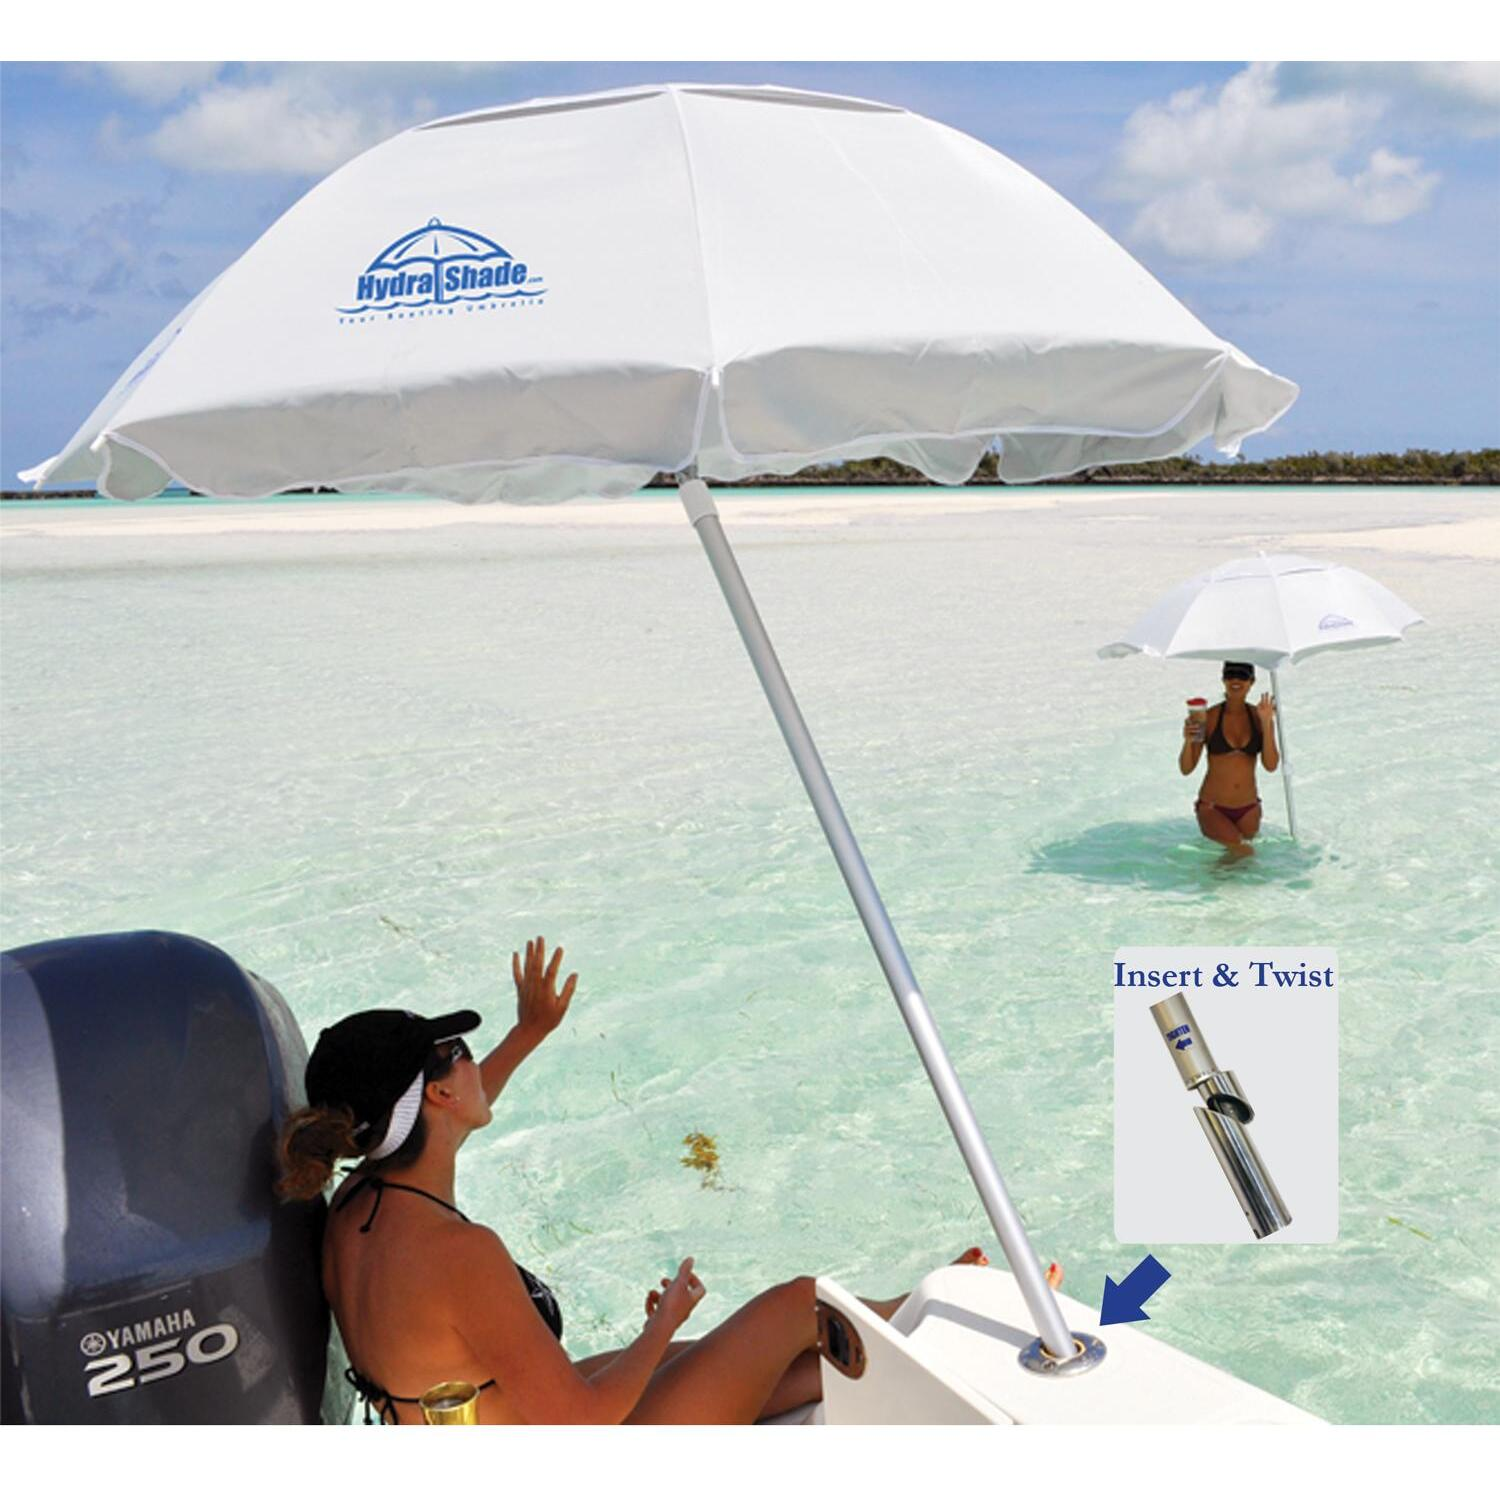 Hydra shade 4 piece kit boating umbrella by oj commerce hs for Boat umbrellas fishing